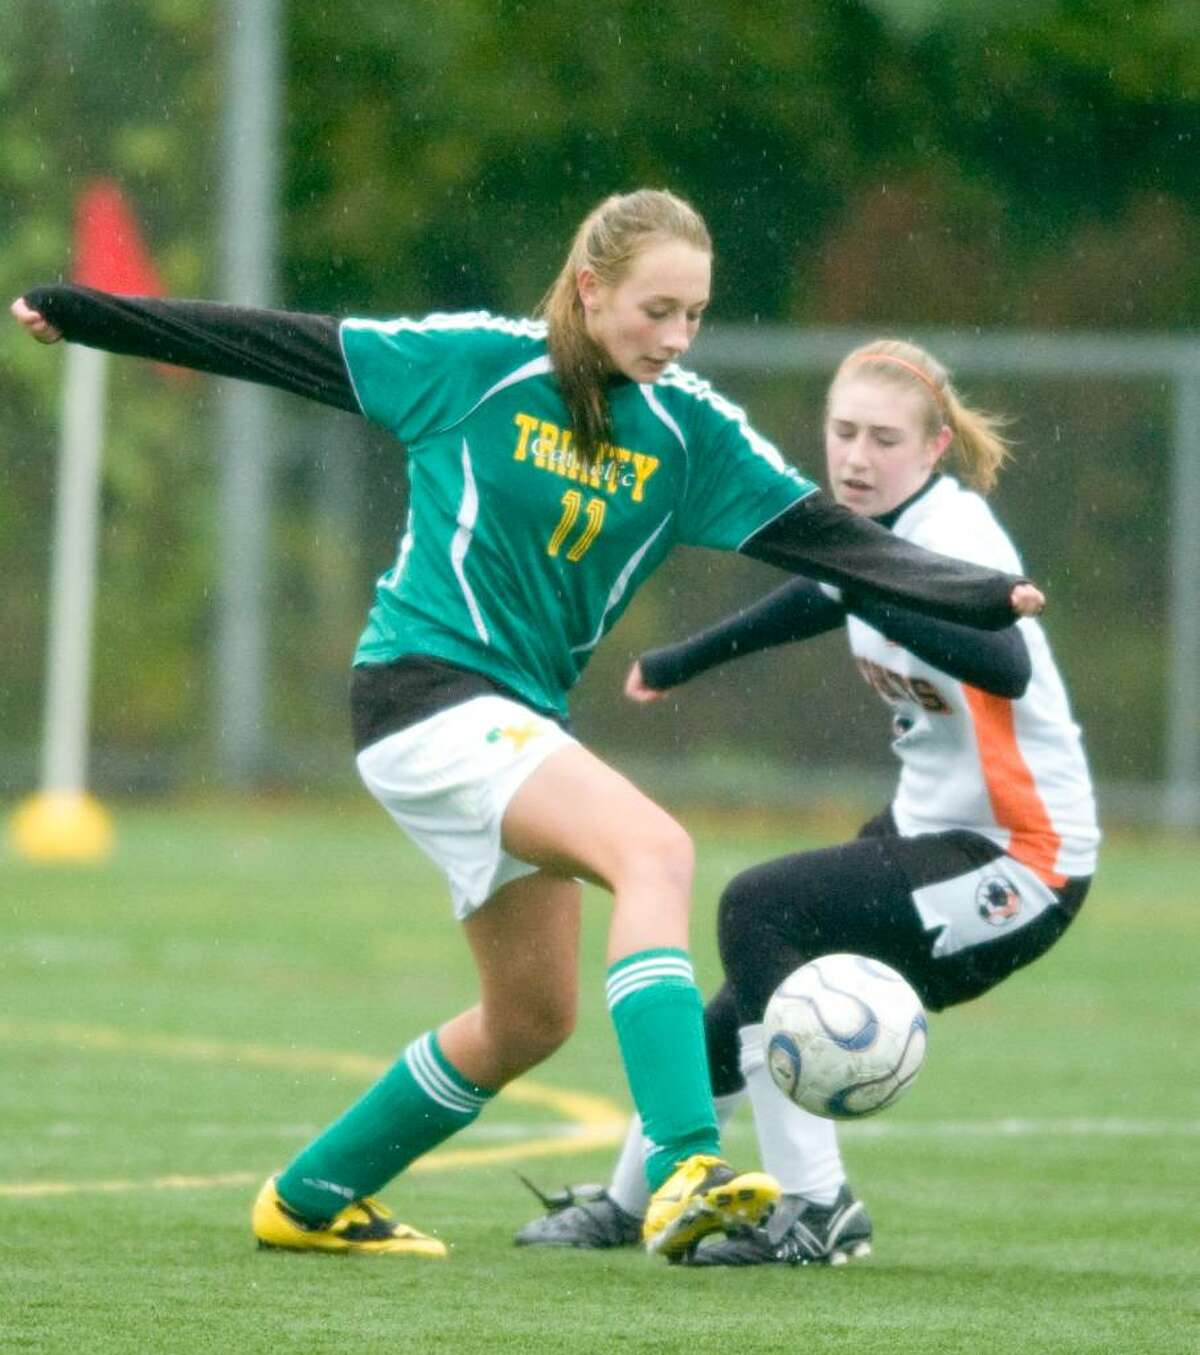 Trinity's Mackenzie Griffin, left, and Stamford's Kaitlyn Fitzpatrick, right, during and FCIAC girls soccer game at Stamford High School in Stamford, Conn. on Thursday, Oct. 15, 2009.